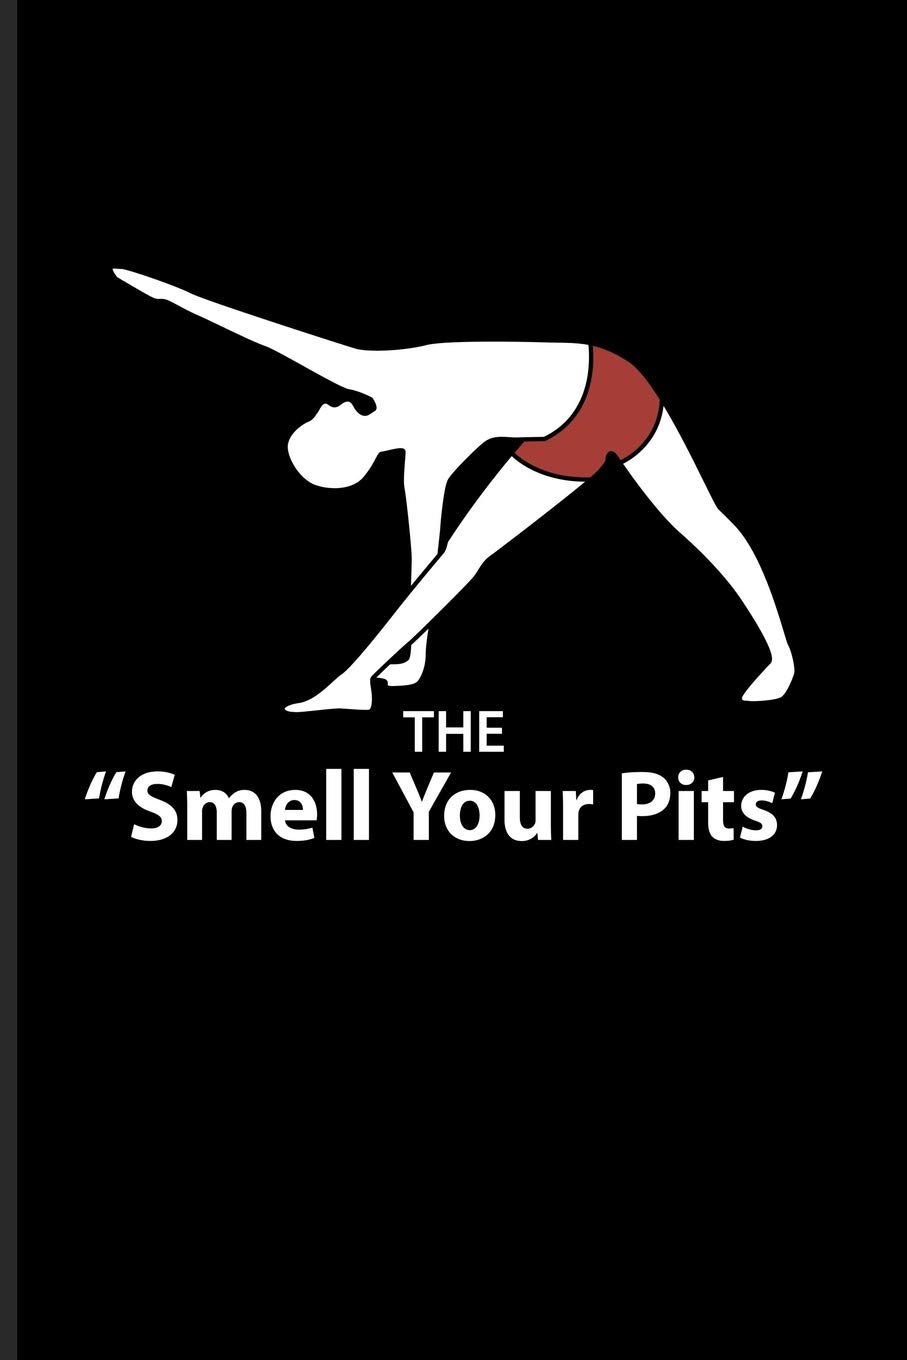 The Smell Your Pits Funny Yoga Poses Journal For Funny Yoga Quotes Yoga At Home Yogi Lifestyle Relaxation Balance Mindfulness Meditation Fans 6x9 100 Blank Lined Pages Lotus Yeoys